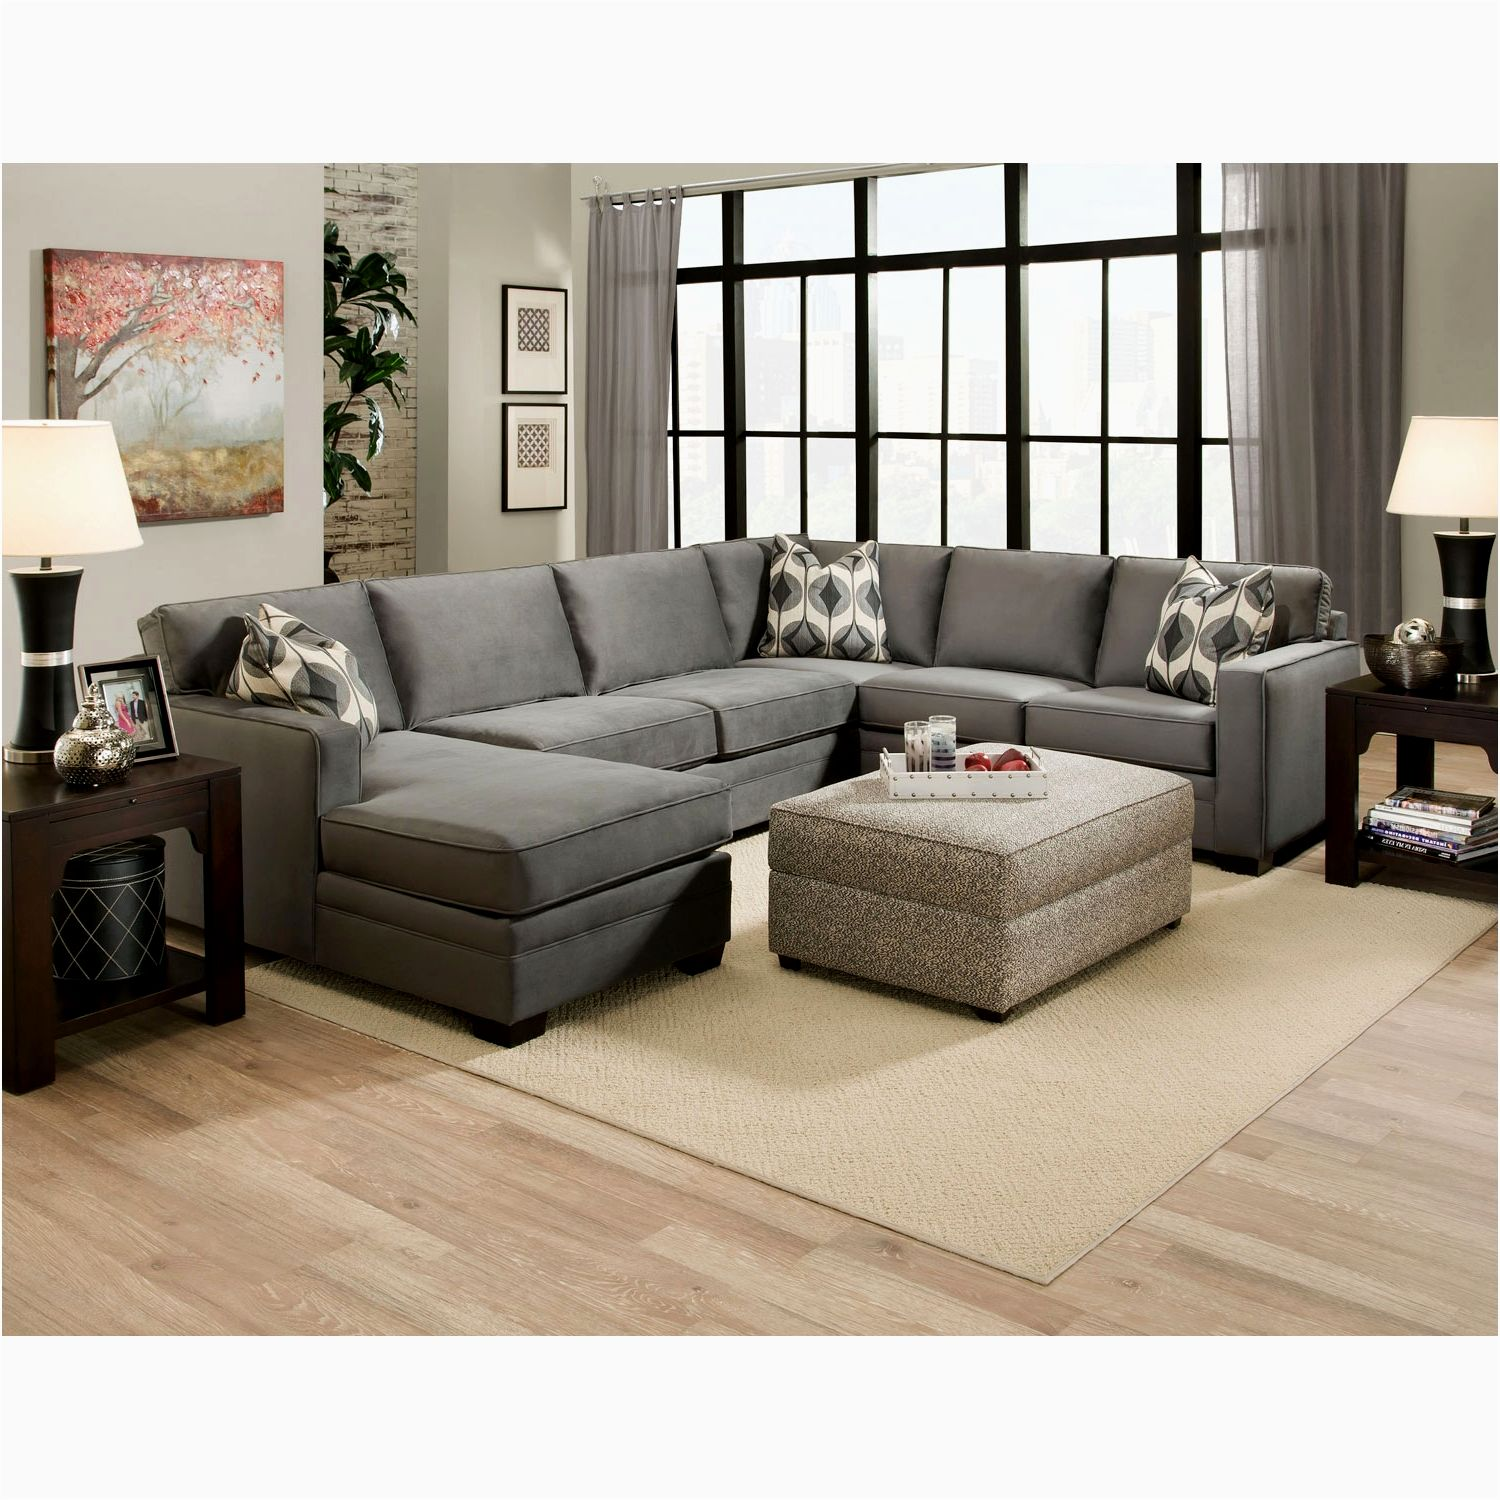 fresh sofa sets on sale photograph-Unique sofa Sets On Sale Concept